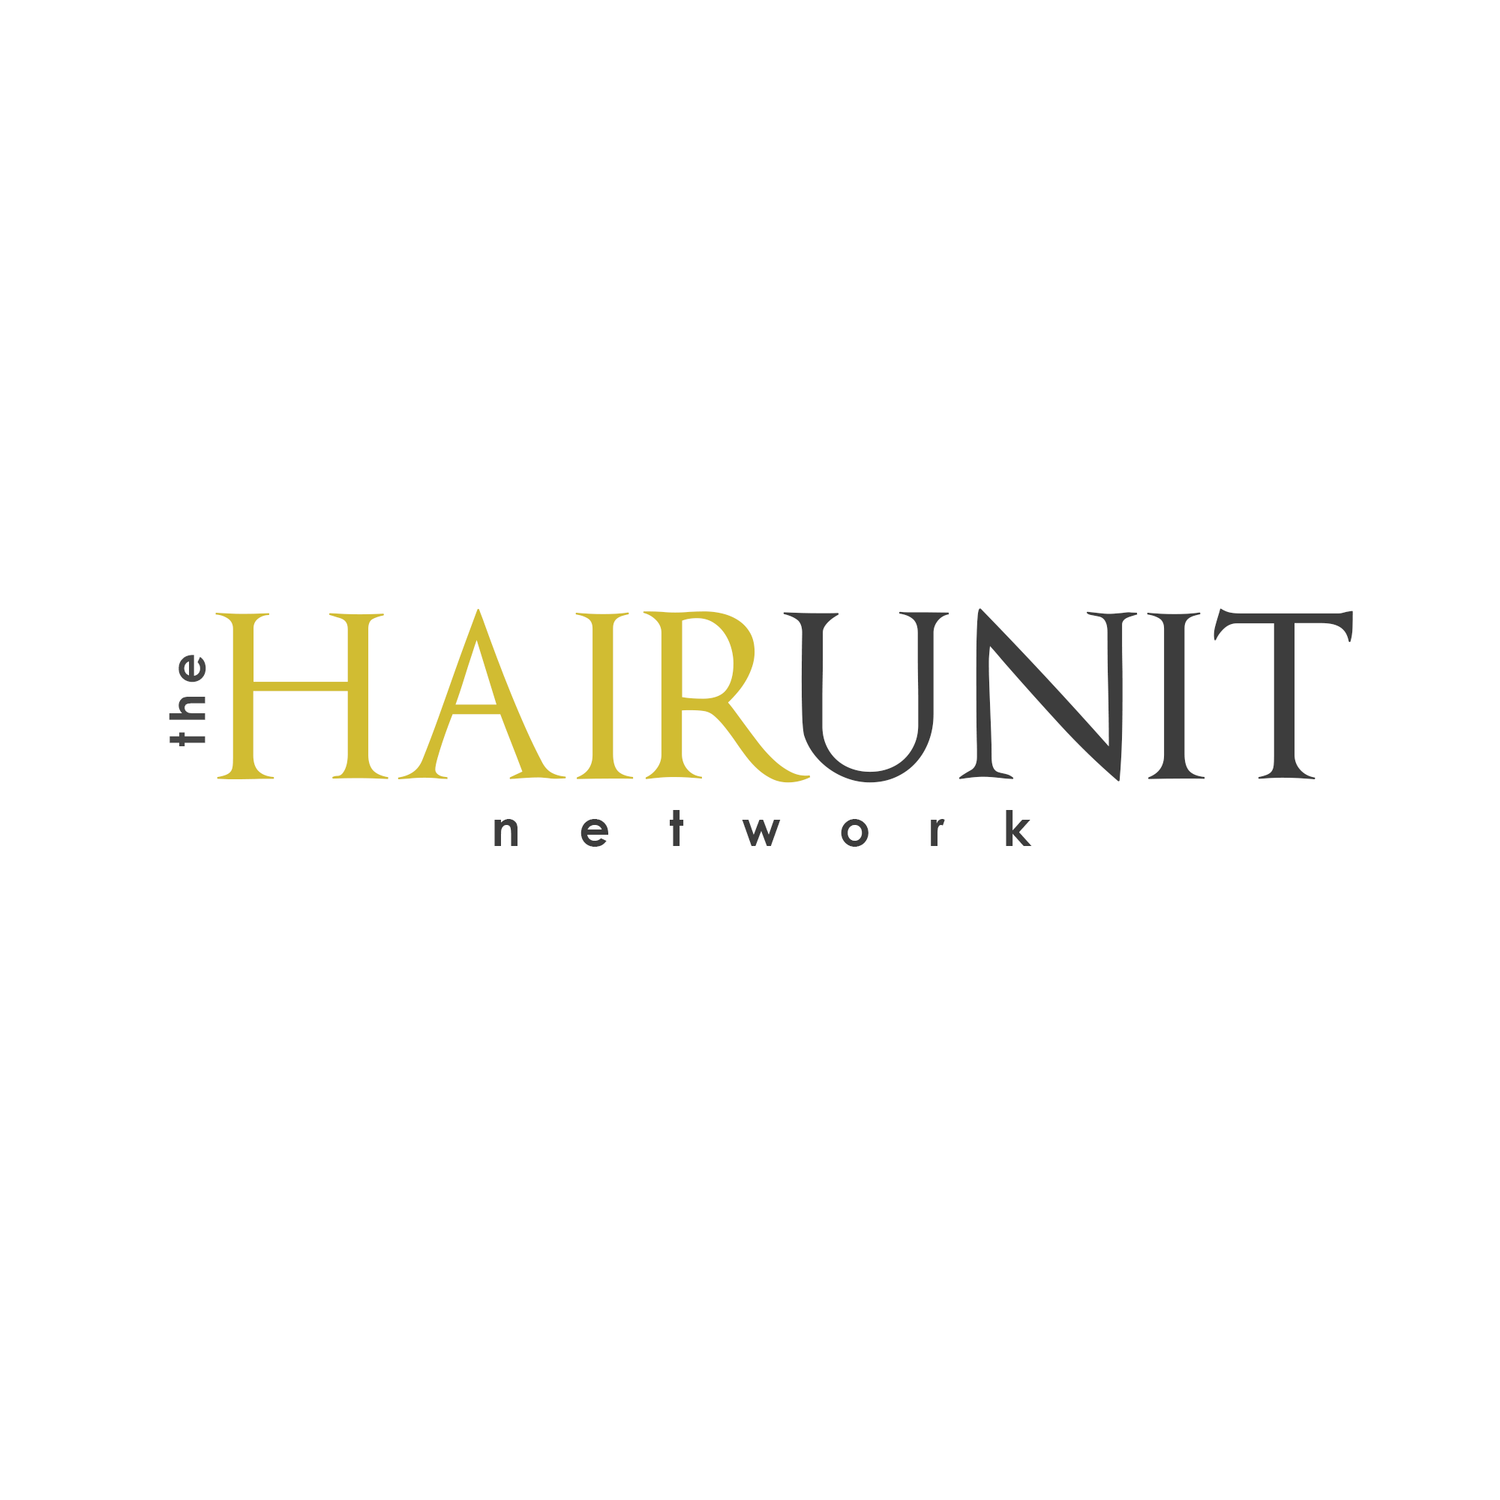 WELCOME TO THE HAIR UNIT NETWORK